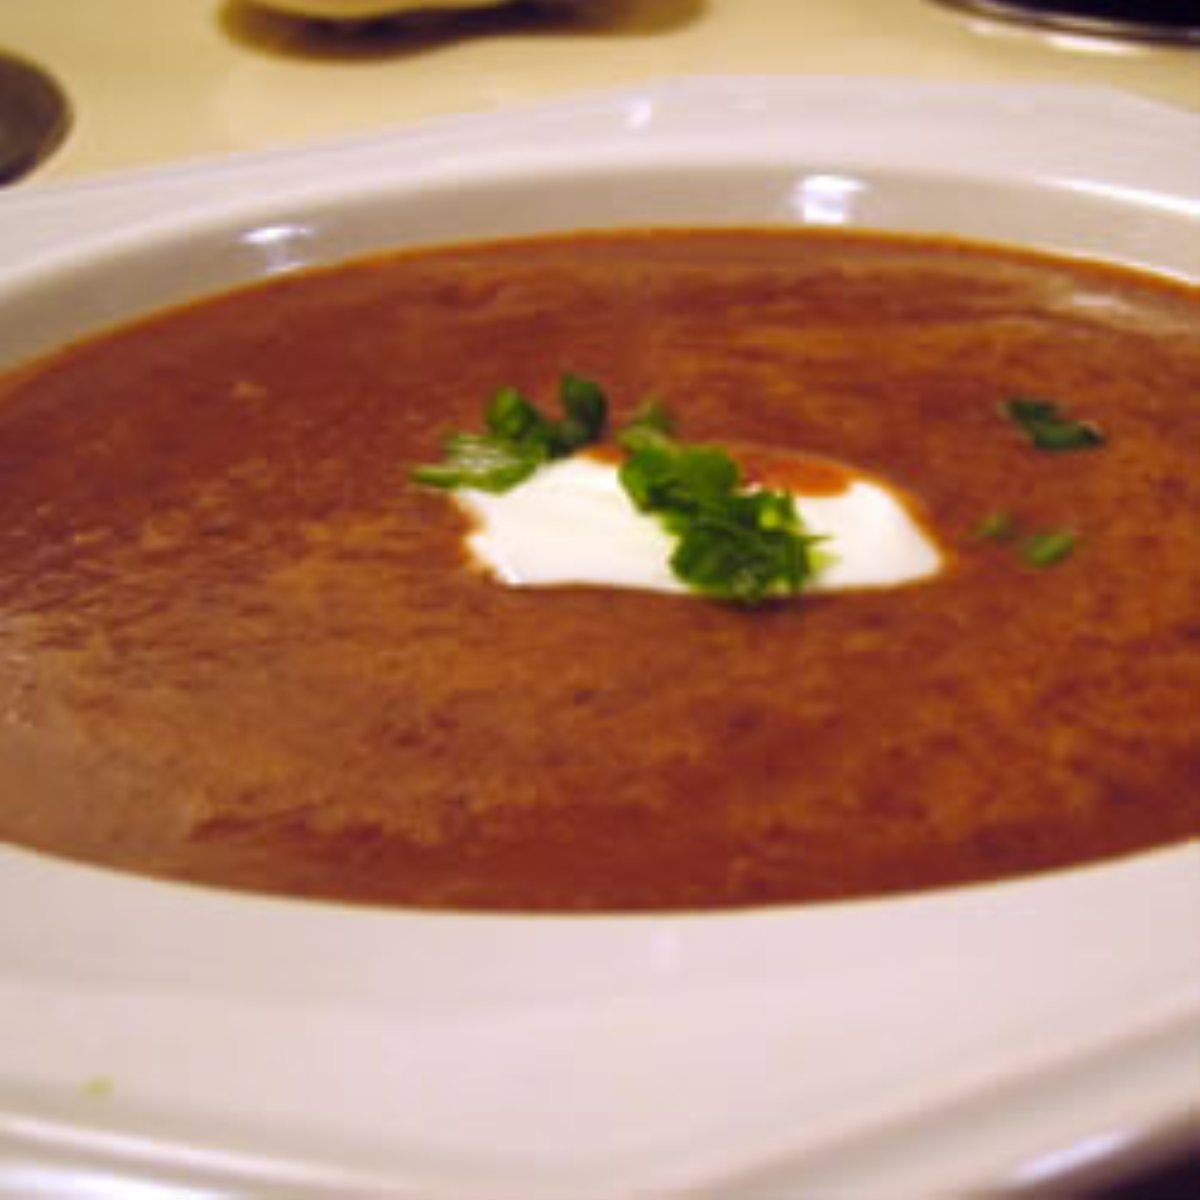 ... Soups, Stews and Chili Beans and Legumes Black Bean and Salsa Soup